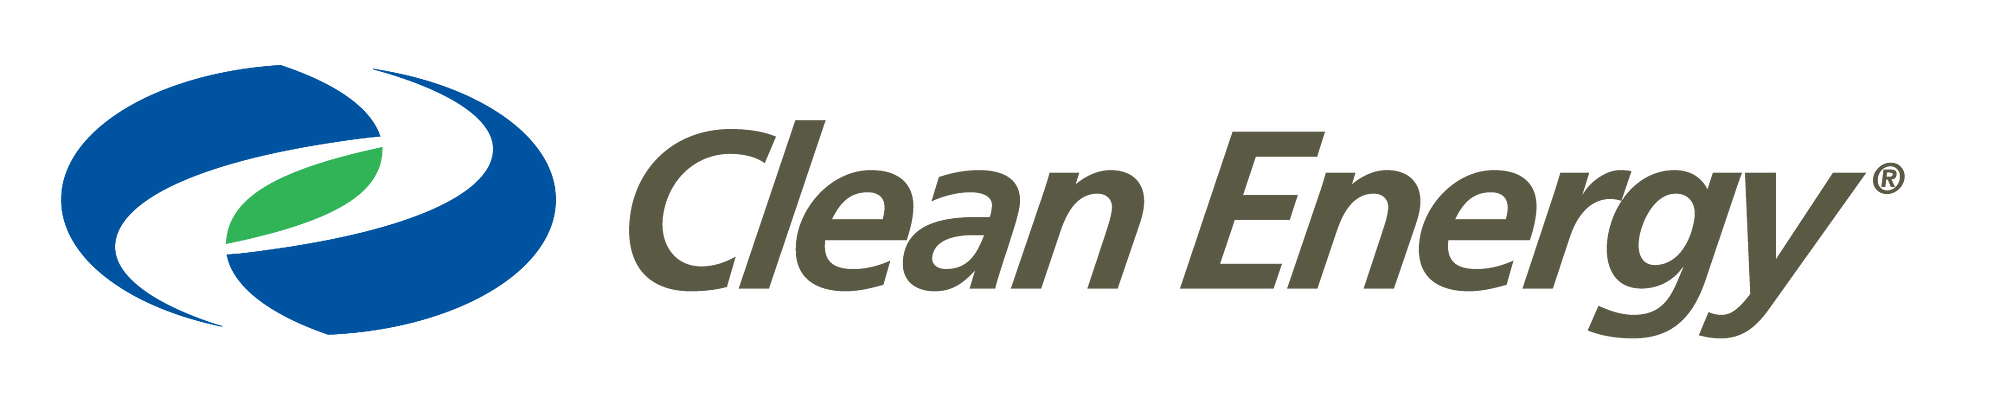 Clean Energy Company Logo